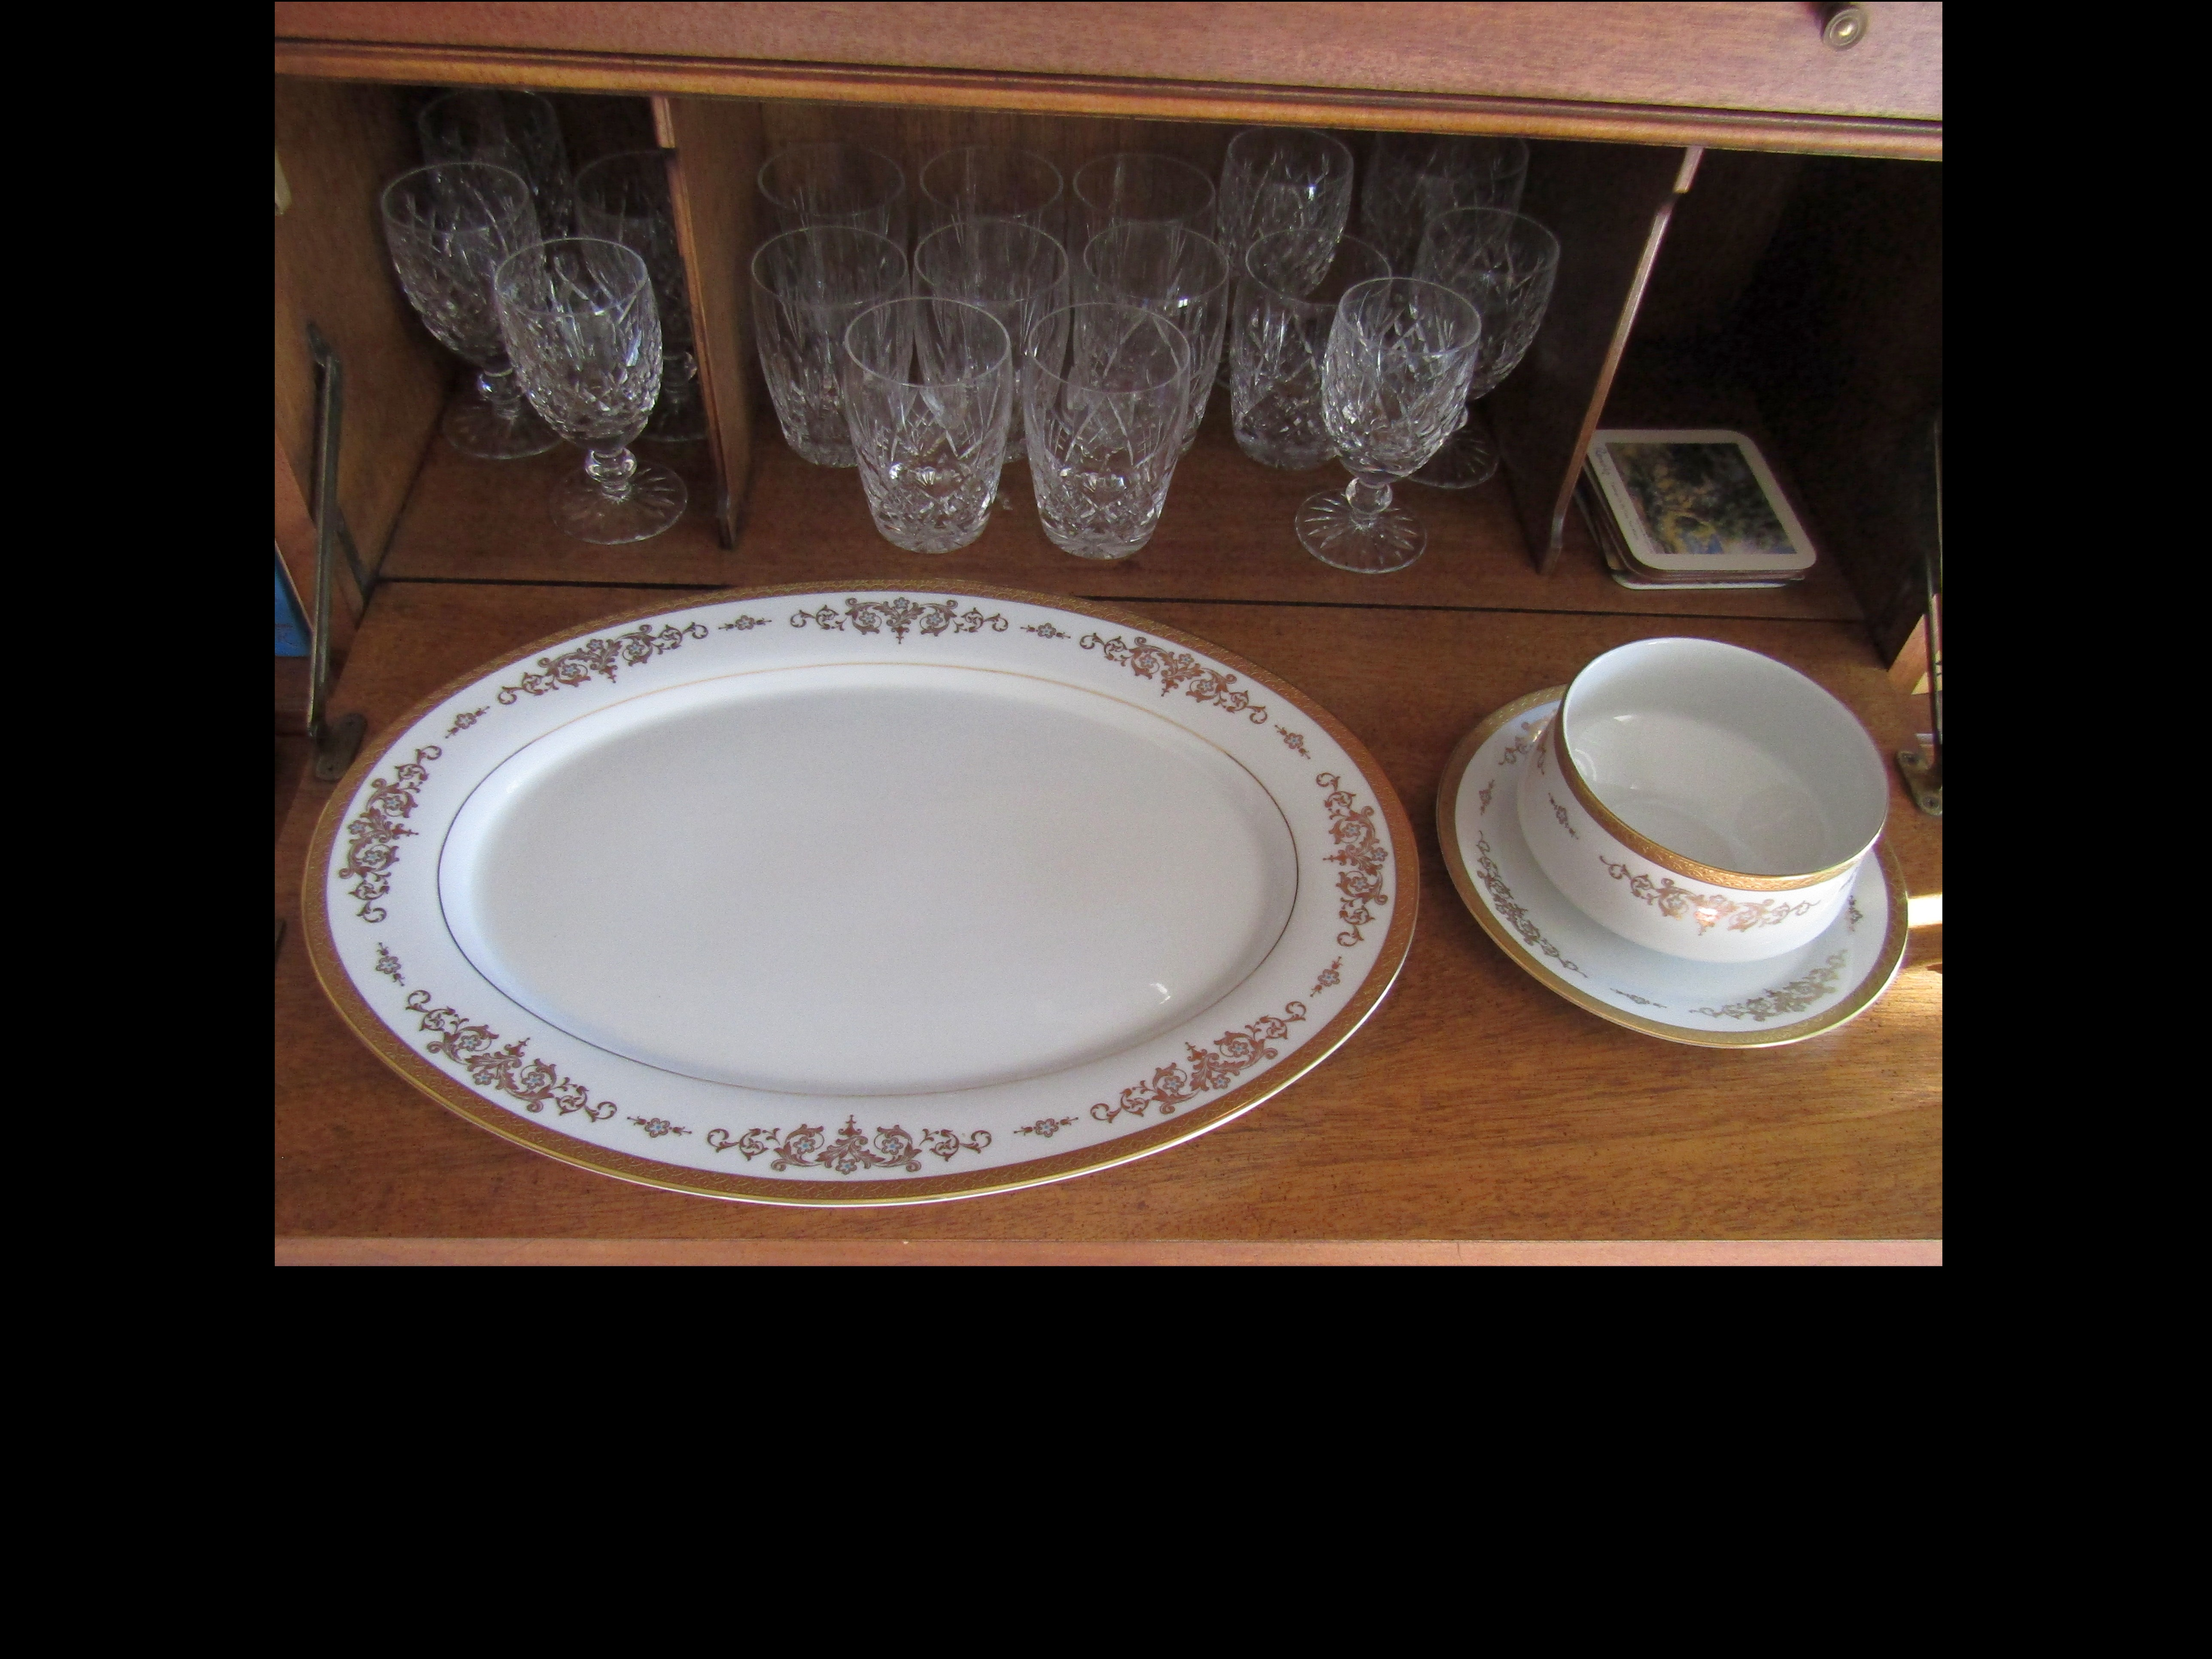 T2a. Platter and Gravy-boat